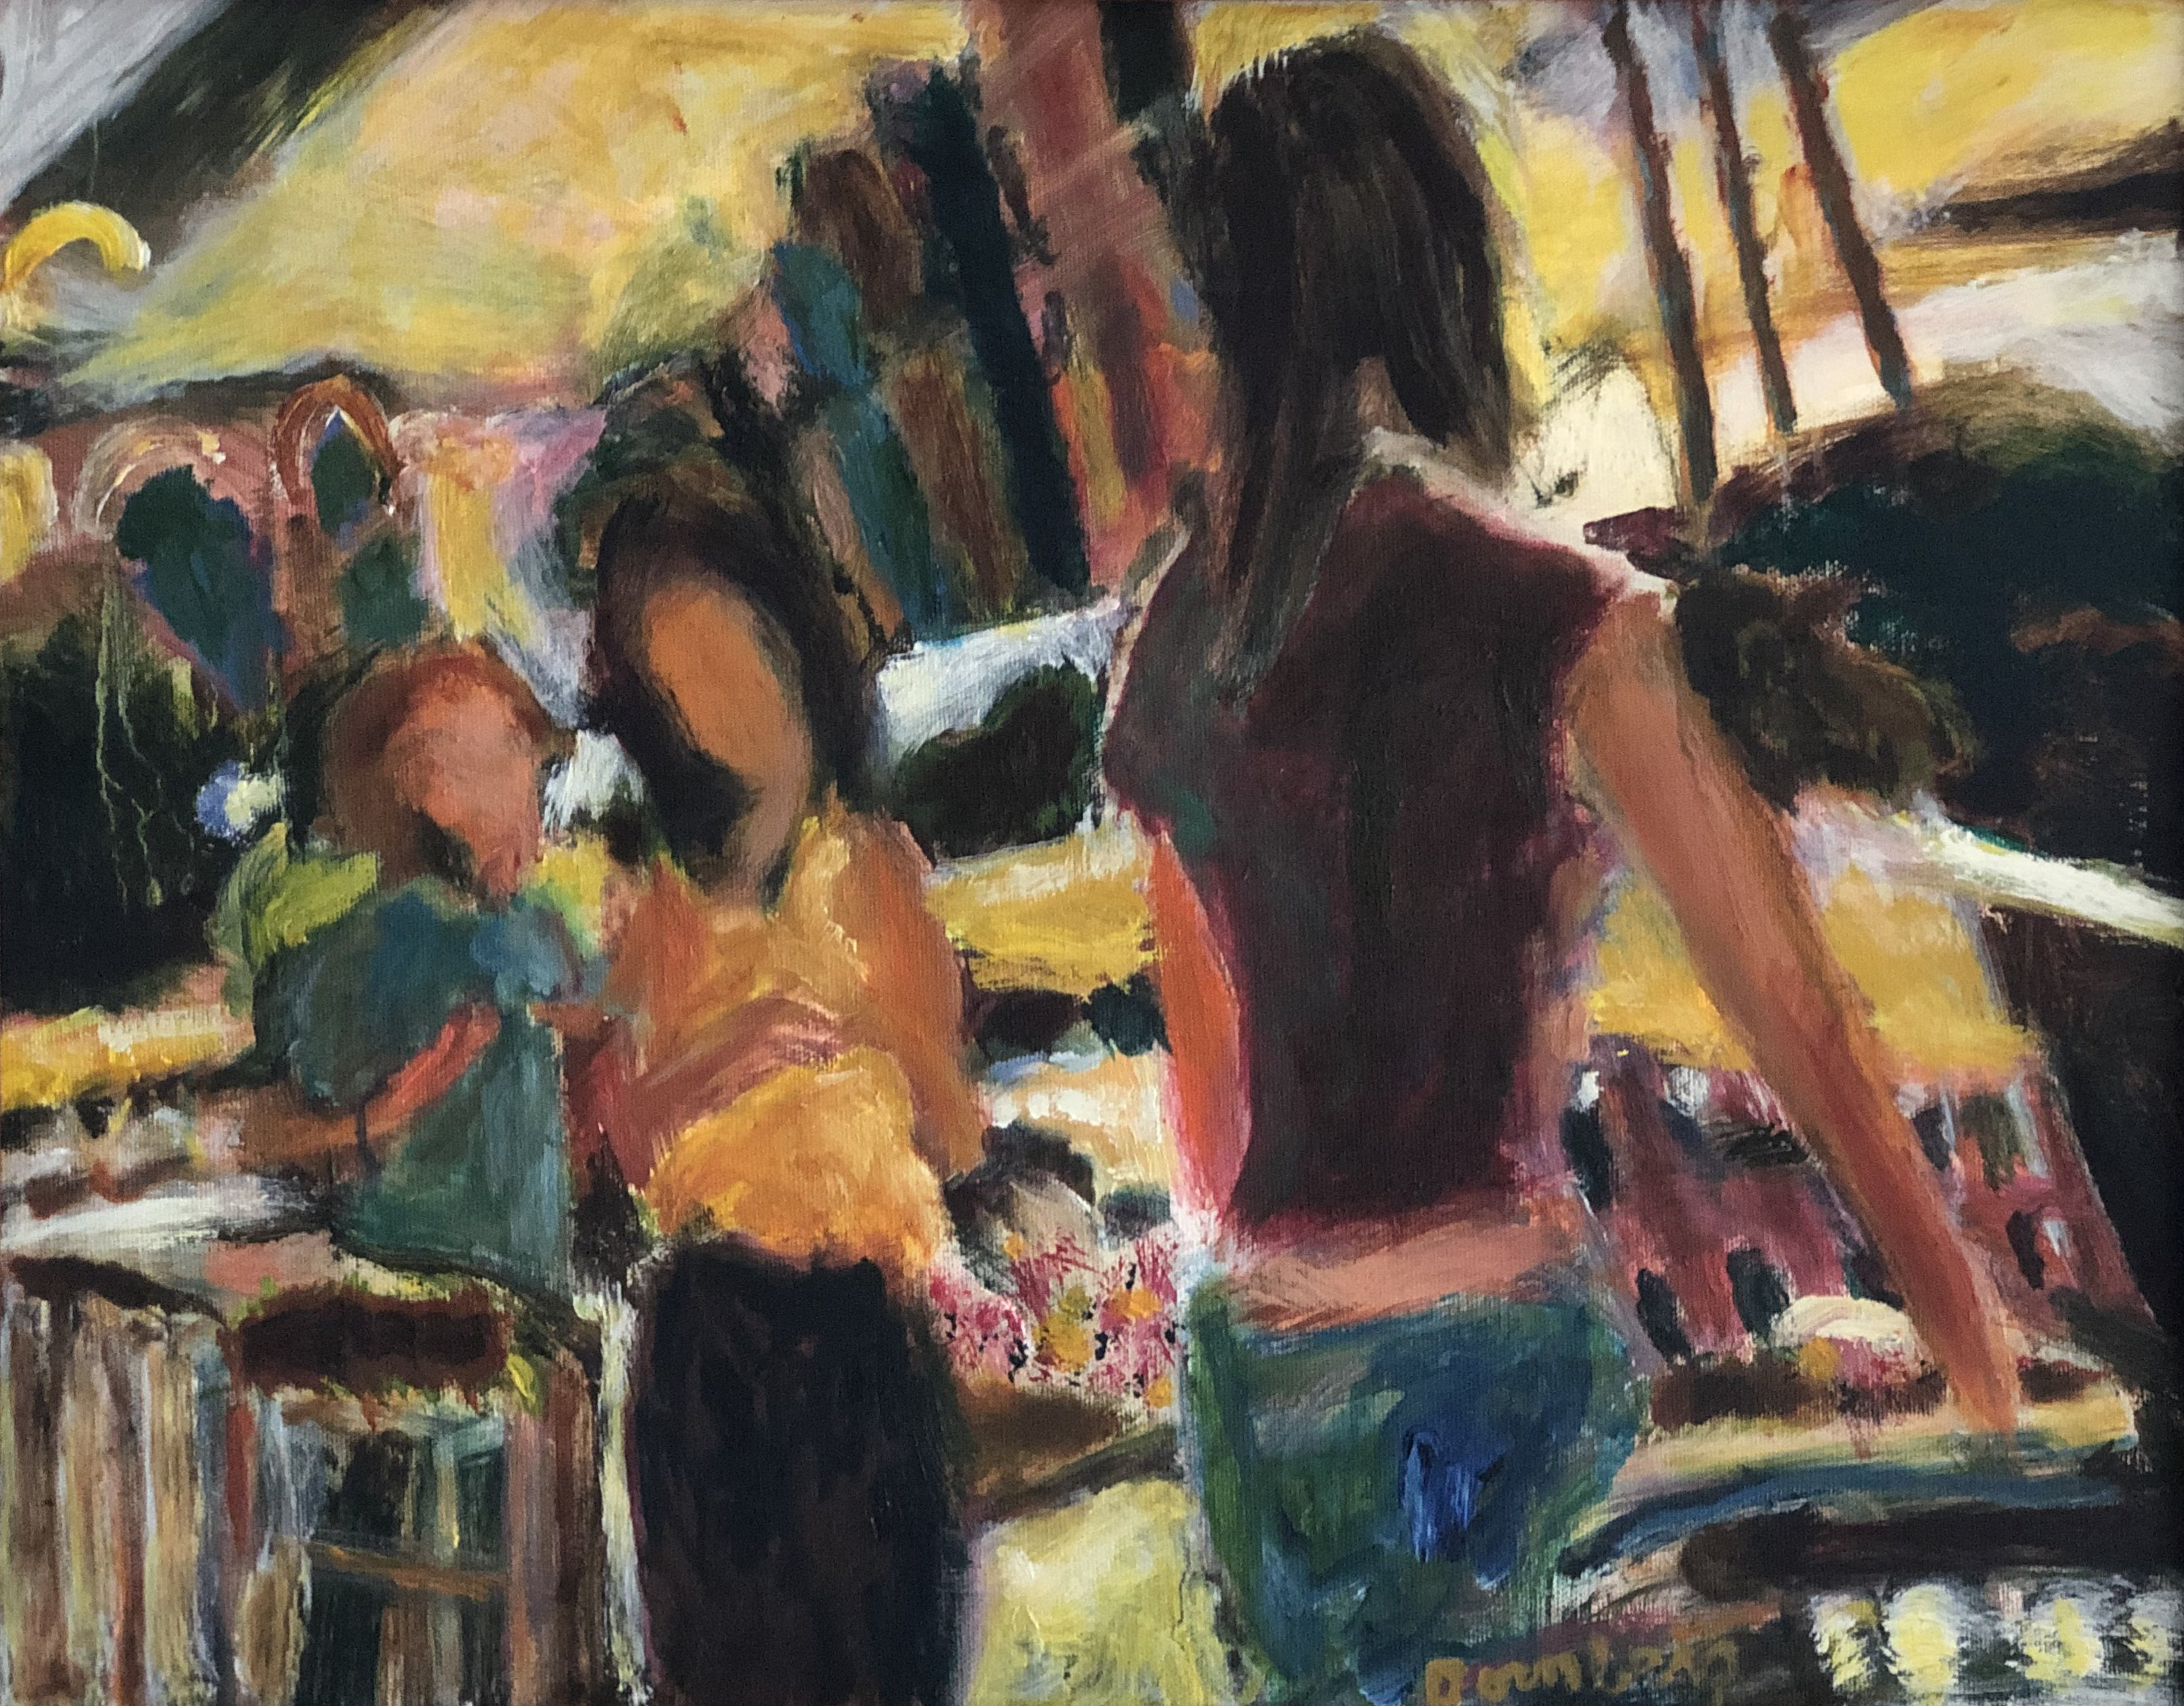 Bob Dornberg: 'market ladies', 2019 Oil Painting, Abstract Figurative. Ladies at market discussing foods...